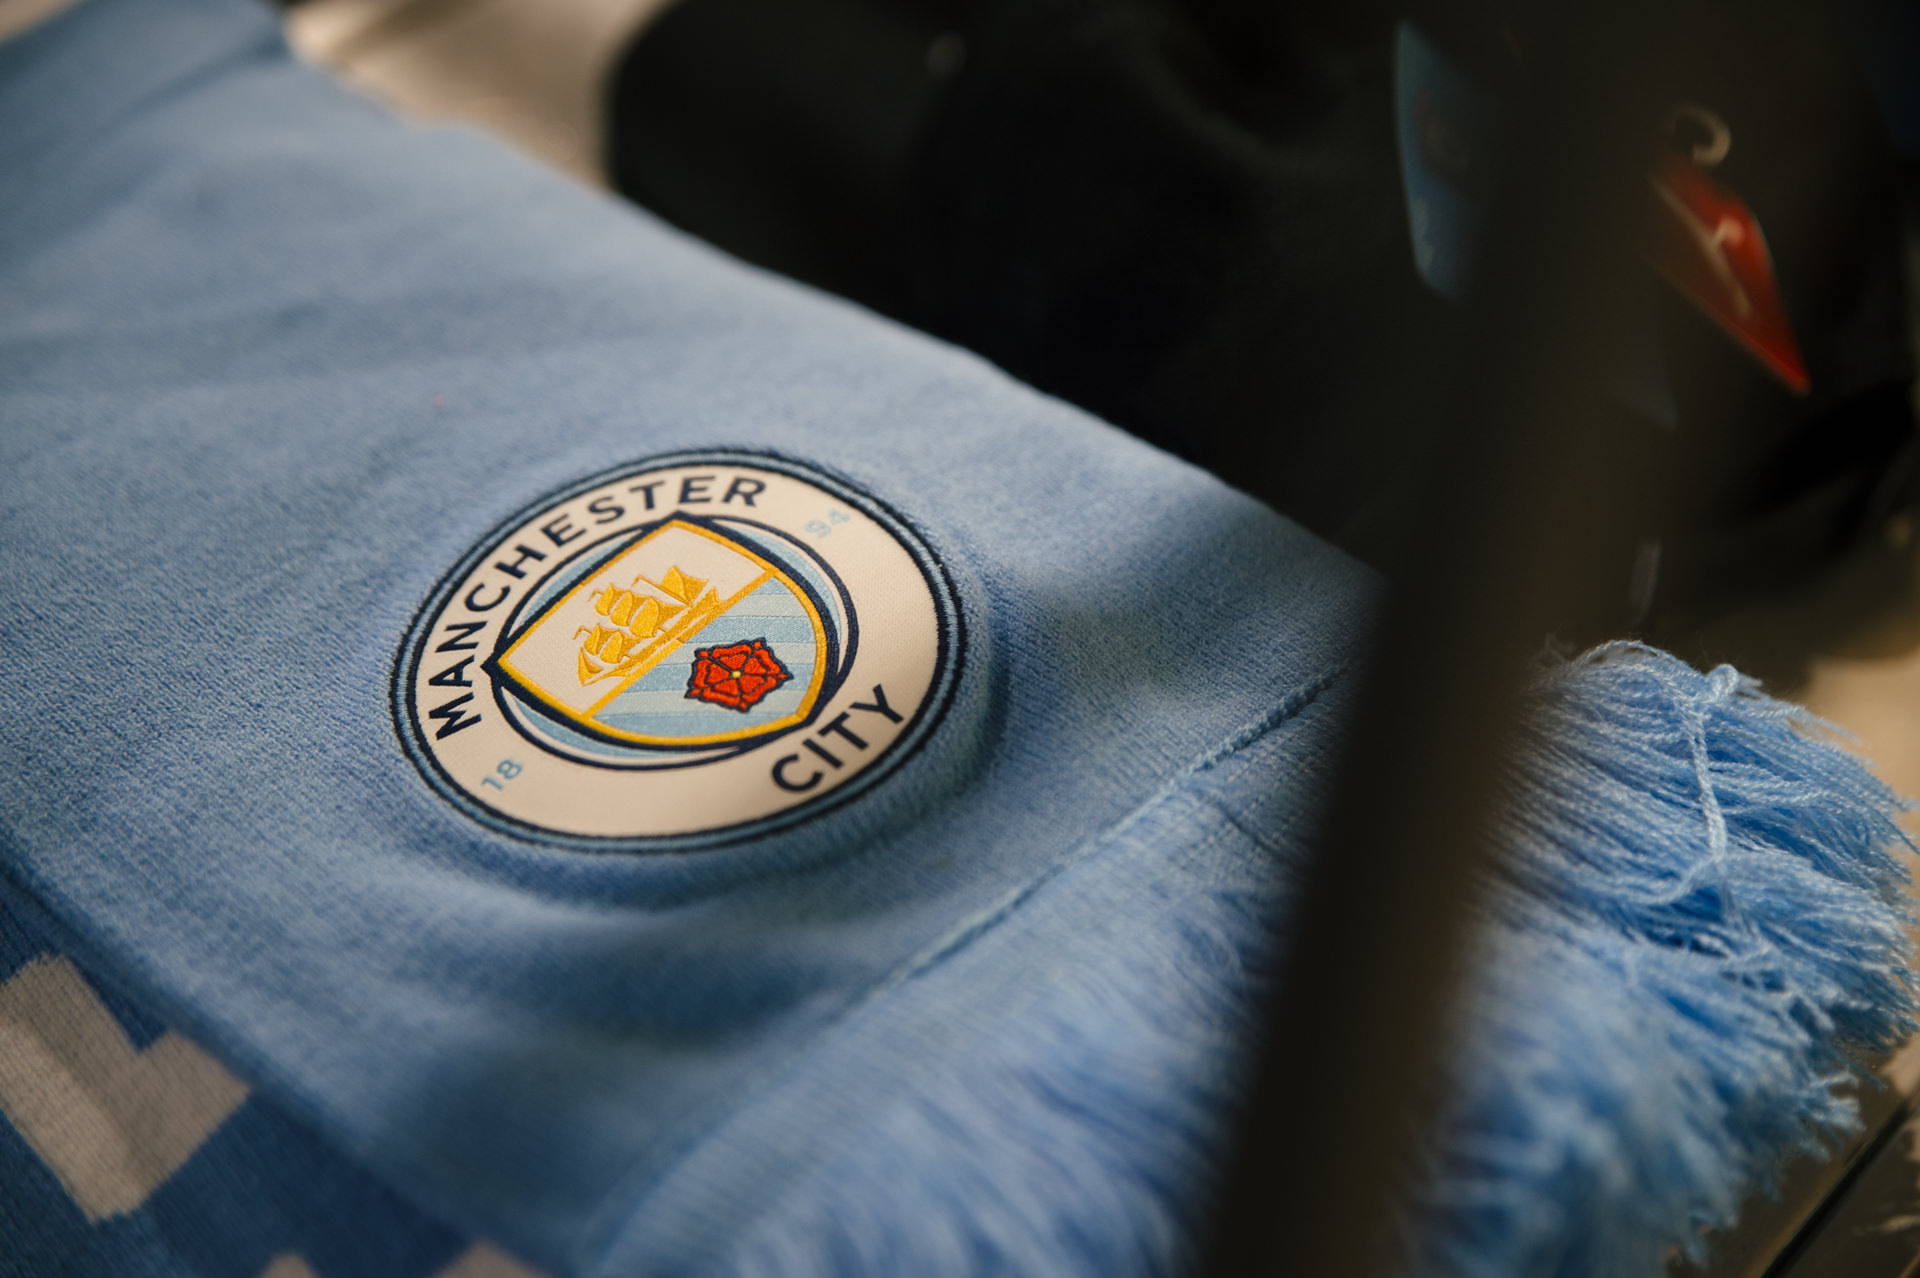 manchester city scarf details